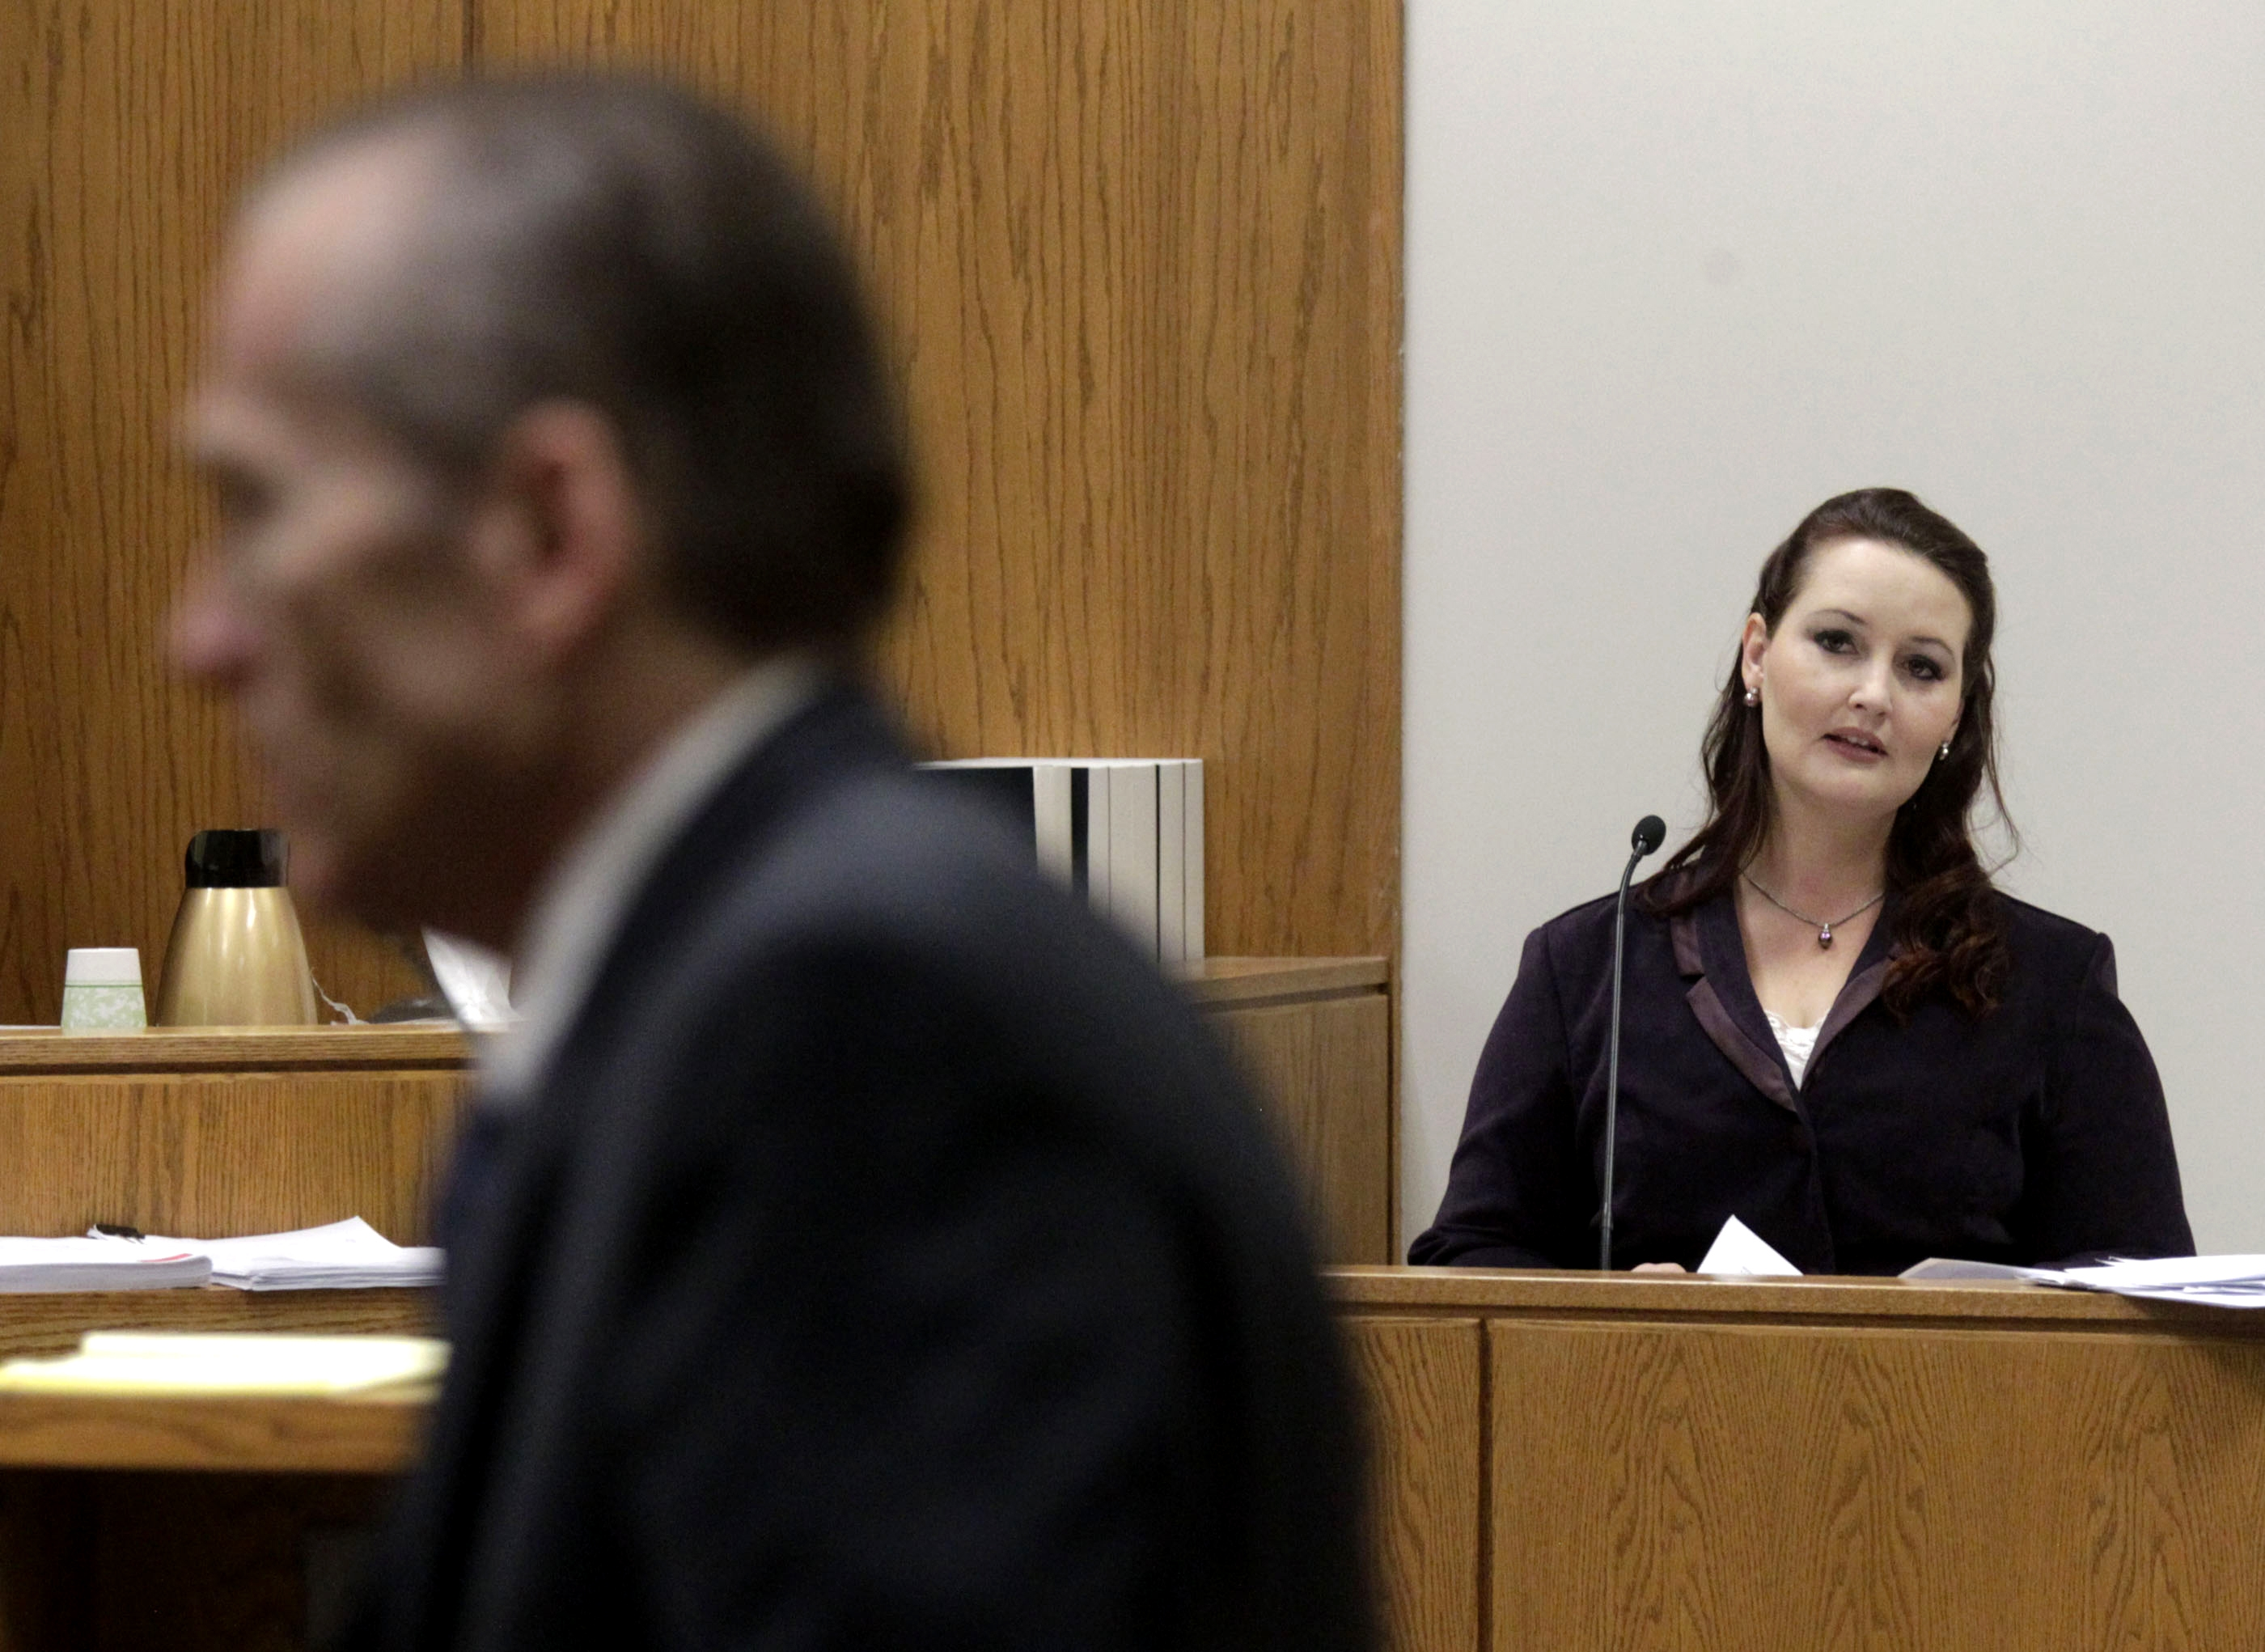 Gypsy Willis, who had an affair with Martin MacNeill, took the witness stand in his murder trial in 4th District Court in Provo, Utah. Prosecutors tried to show she was MacNeill's motive for killing his wife in 2007.